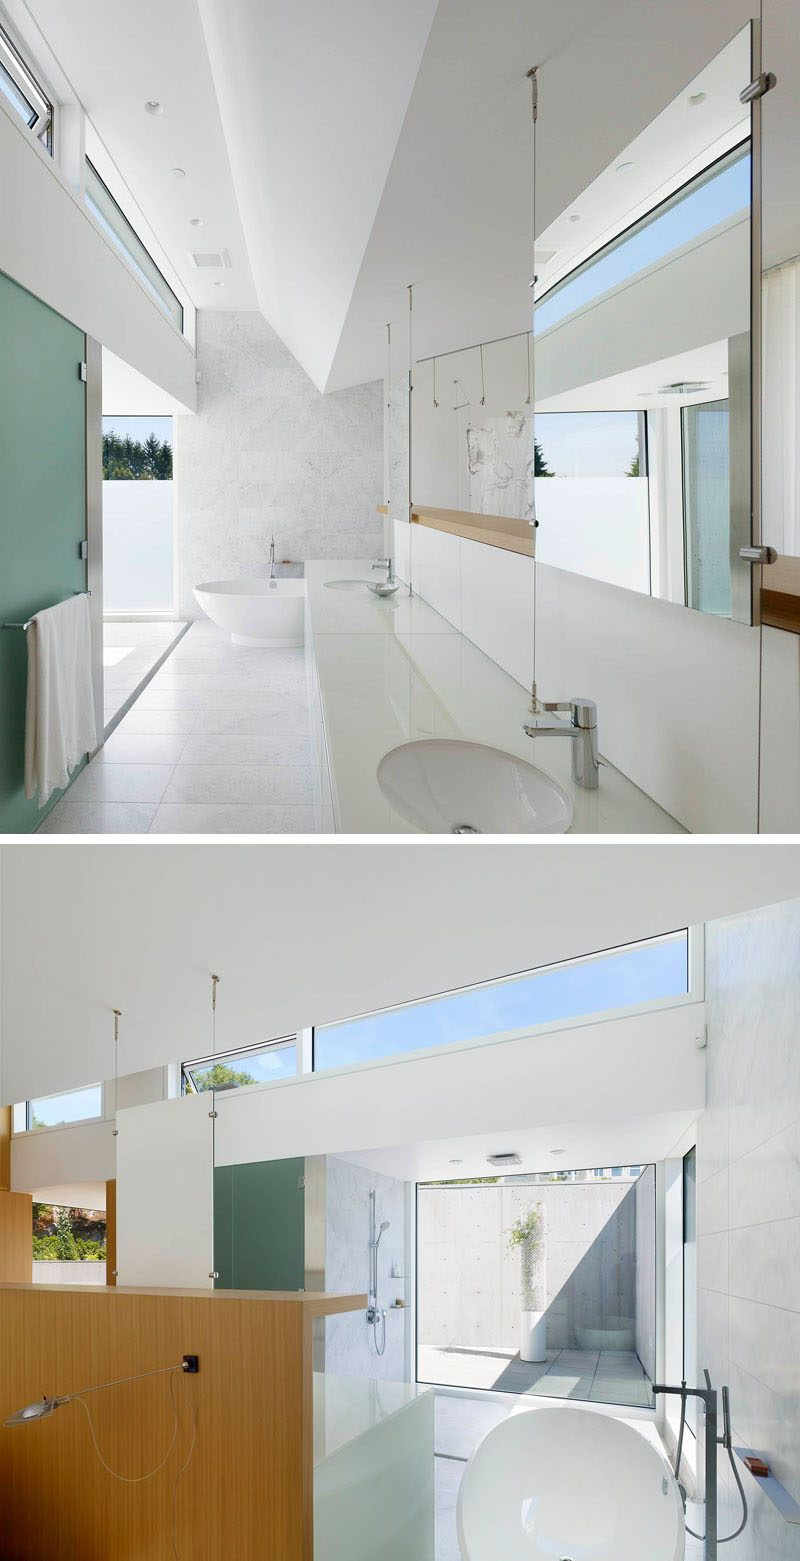 This bright white bathroom has hanging mirrors, touches of wood, and lots of natural light from the floor to ceiling window in the shower.